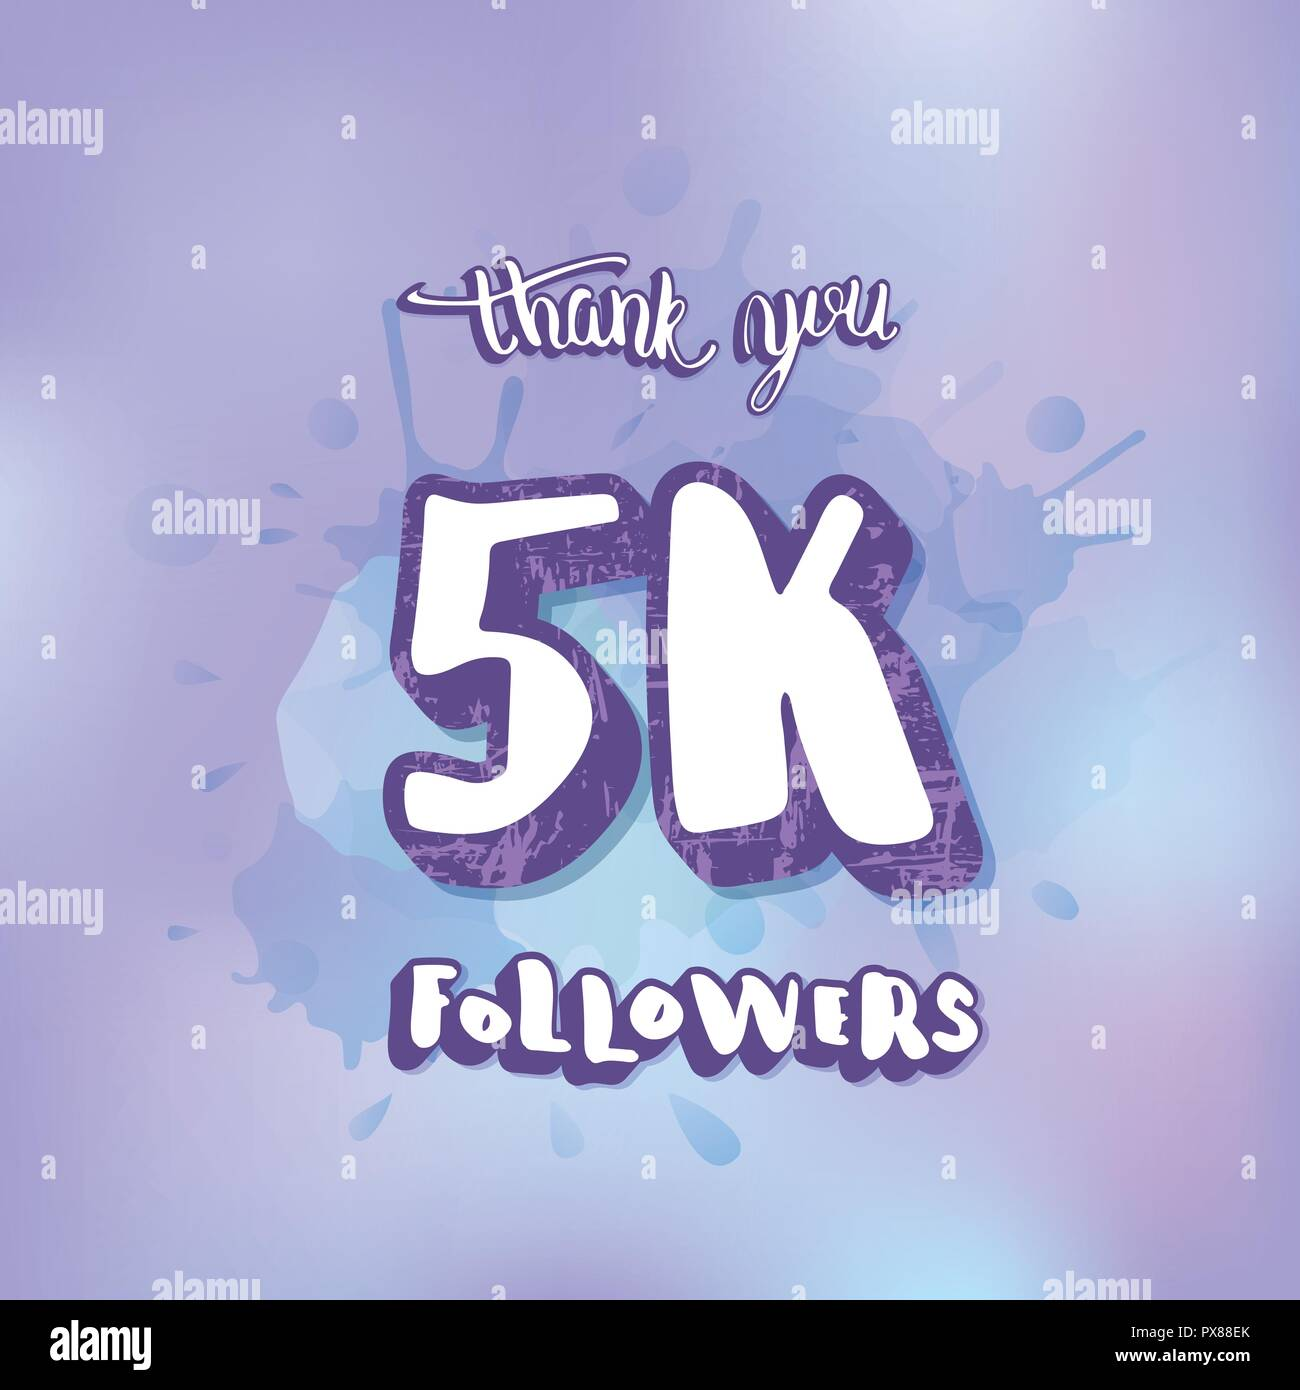 5000 followers thank you social media template banner for internet